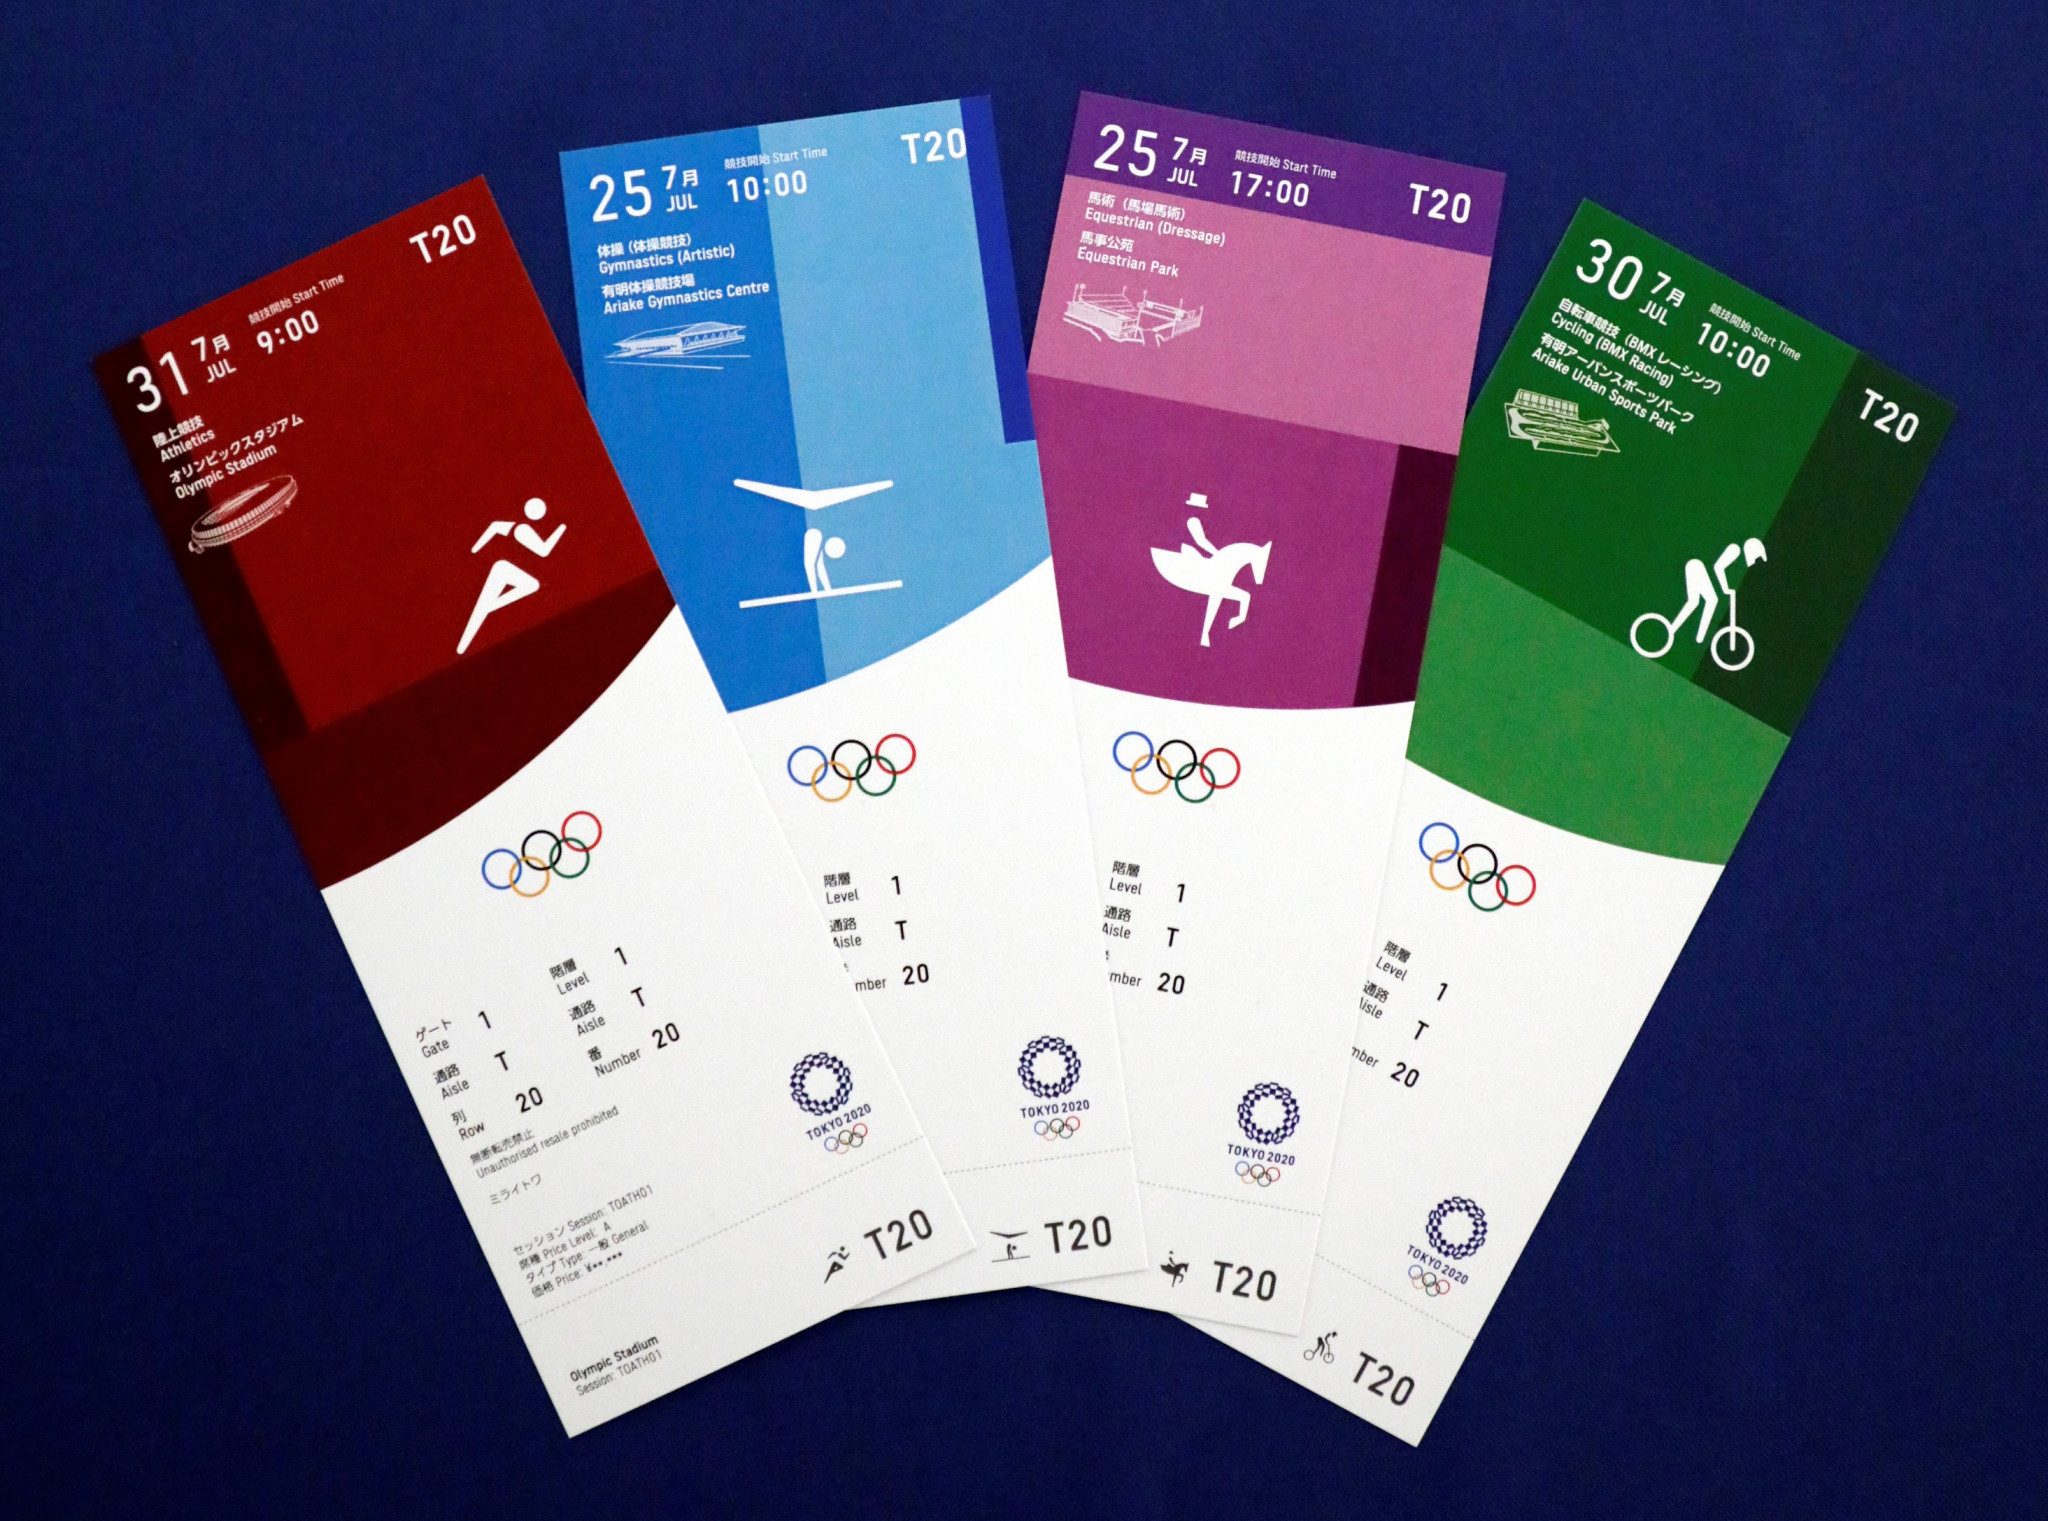 International fans will be able to buy tickets online for the Tokyo 2020 Olympics in May ©Tokyo 2020